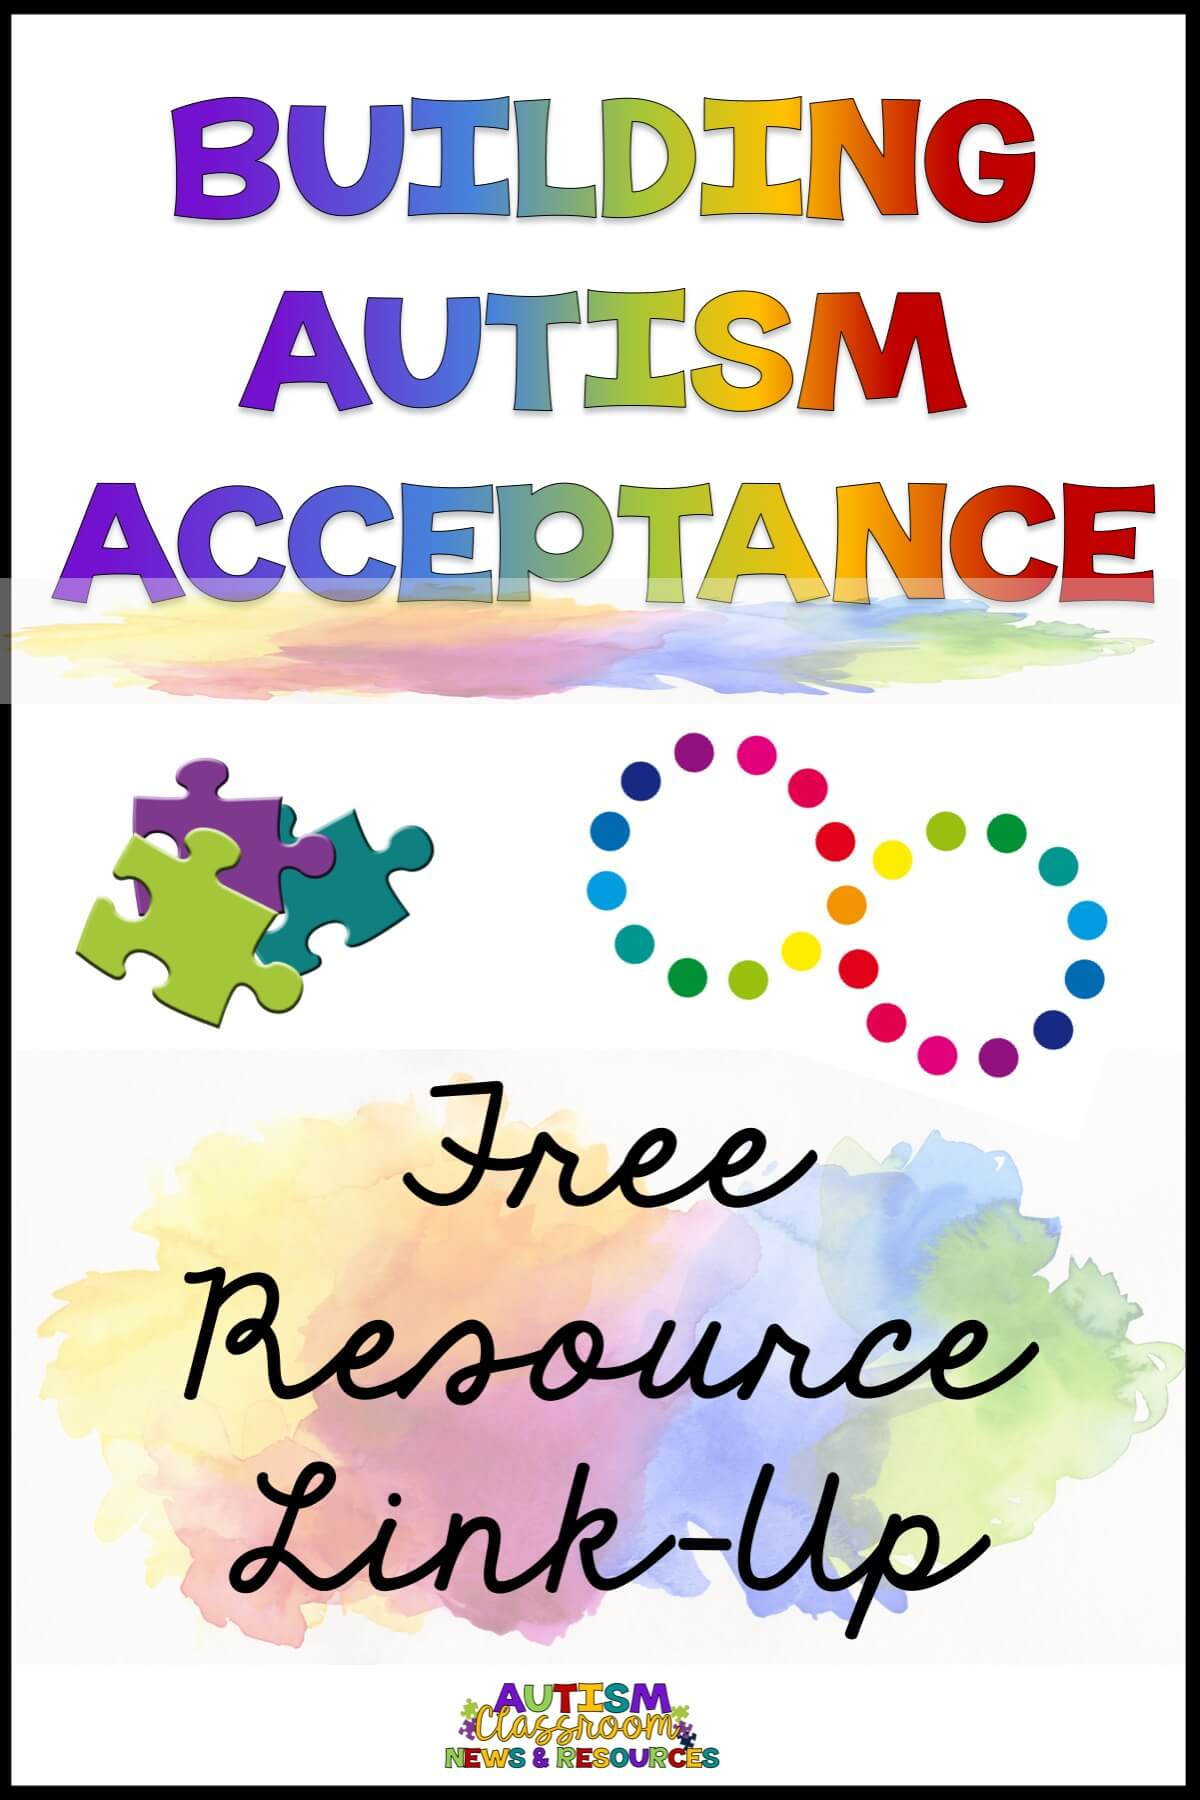 April is Autism Acceptance Month. It's a time to increase awareness and build communities that are more accepting of the diversity those with autism bring to our communities. This linkup of free resources are designed help educators and families build acceptance in their classrooms and communities. #autismacceptance #AutismAcceptanceWithTpT #freeautismresources #free #autism